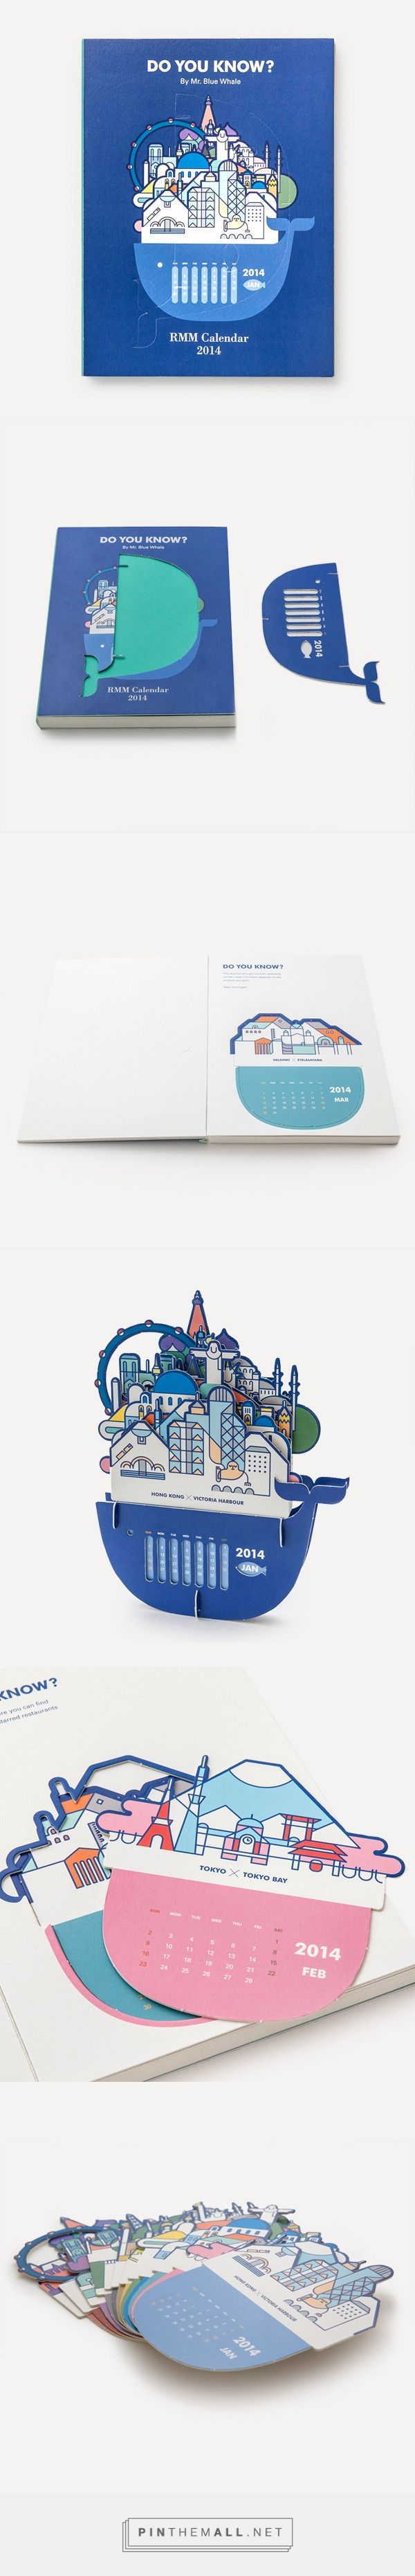 RMM Calendar 2014, Do you know? by Mr. Blue Whale | Readymade Objects Shop - created via http://pinthemall.net